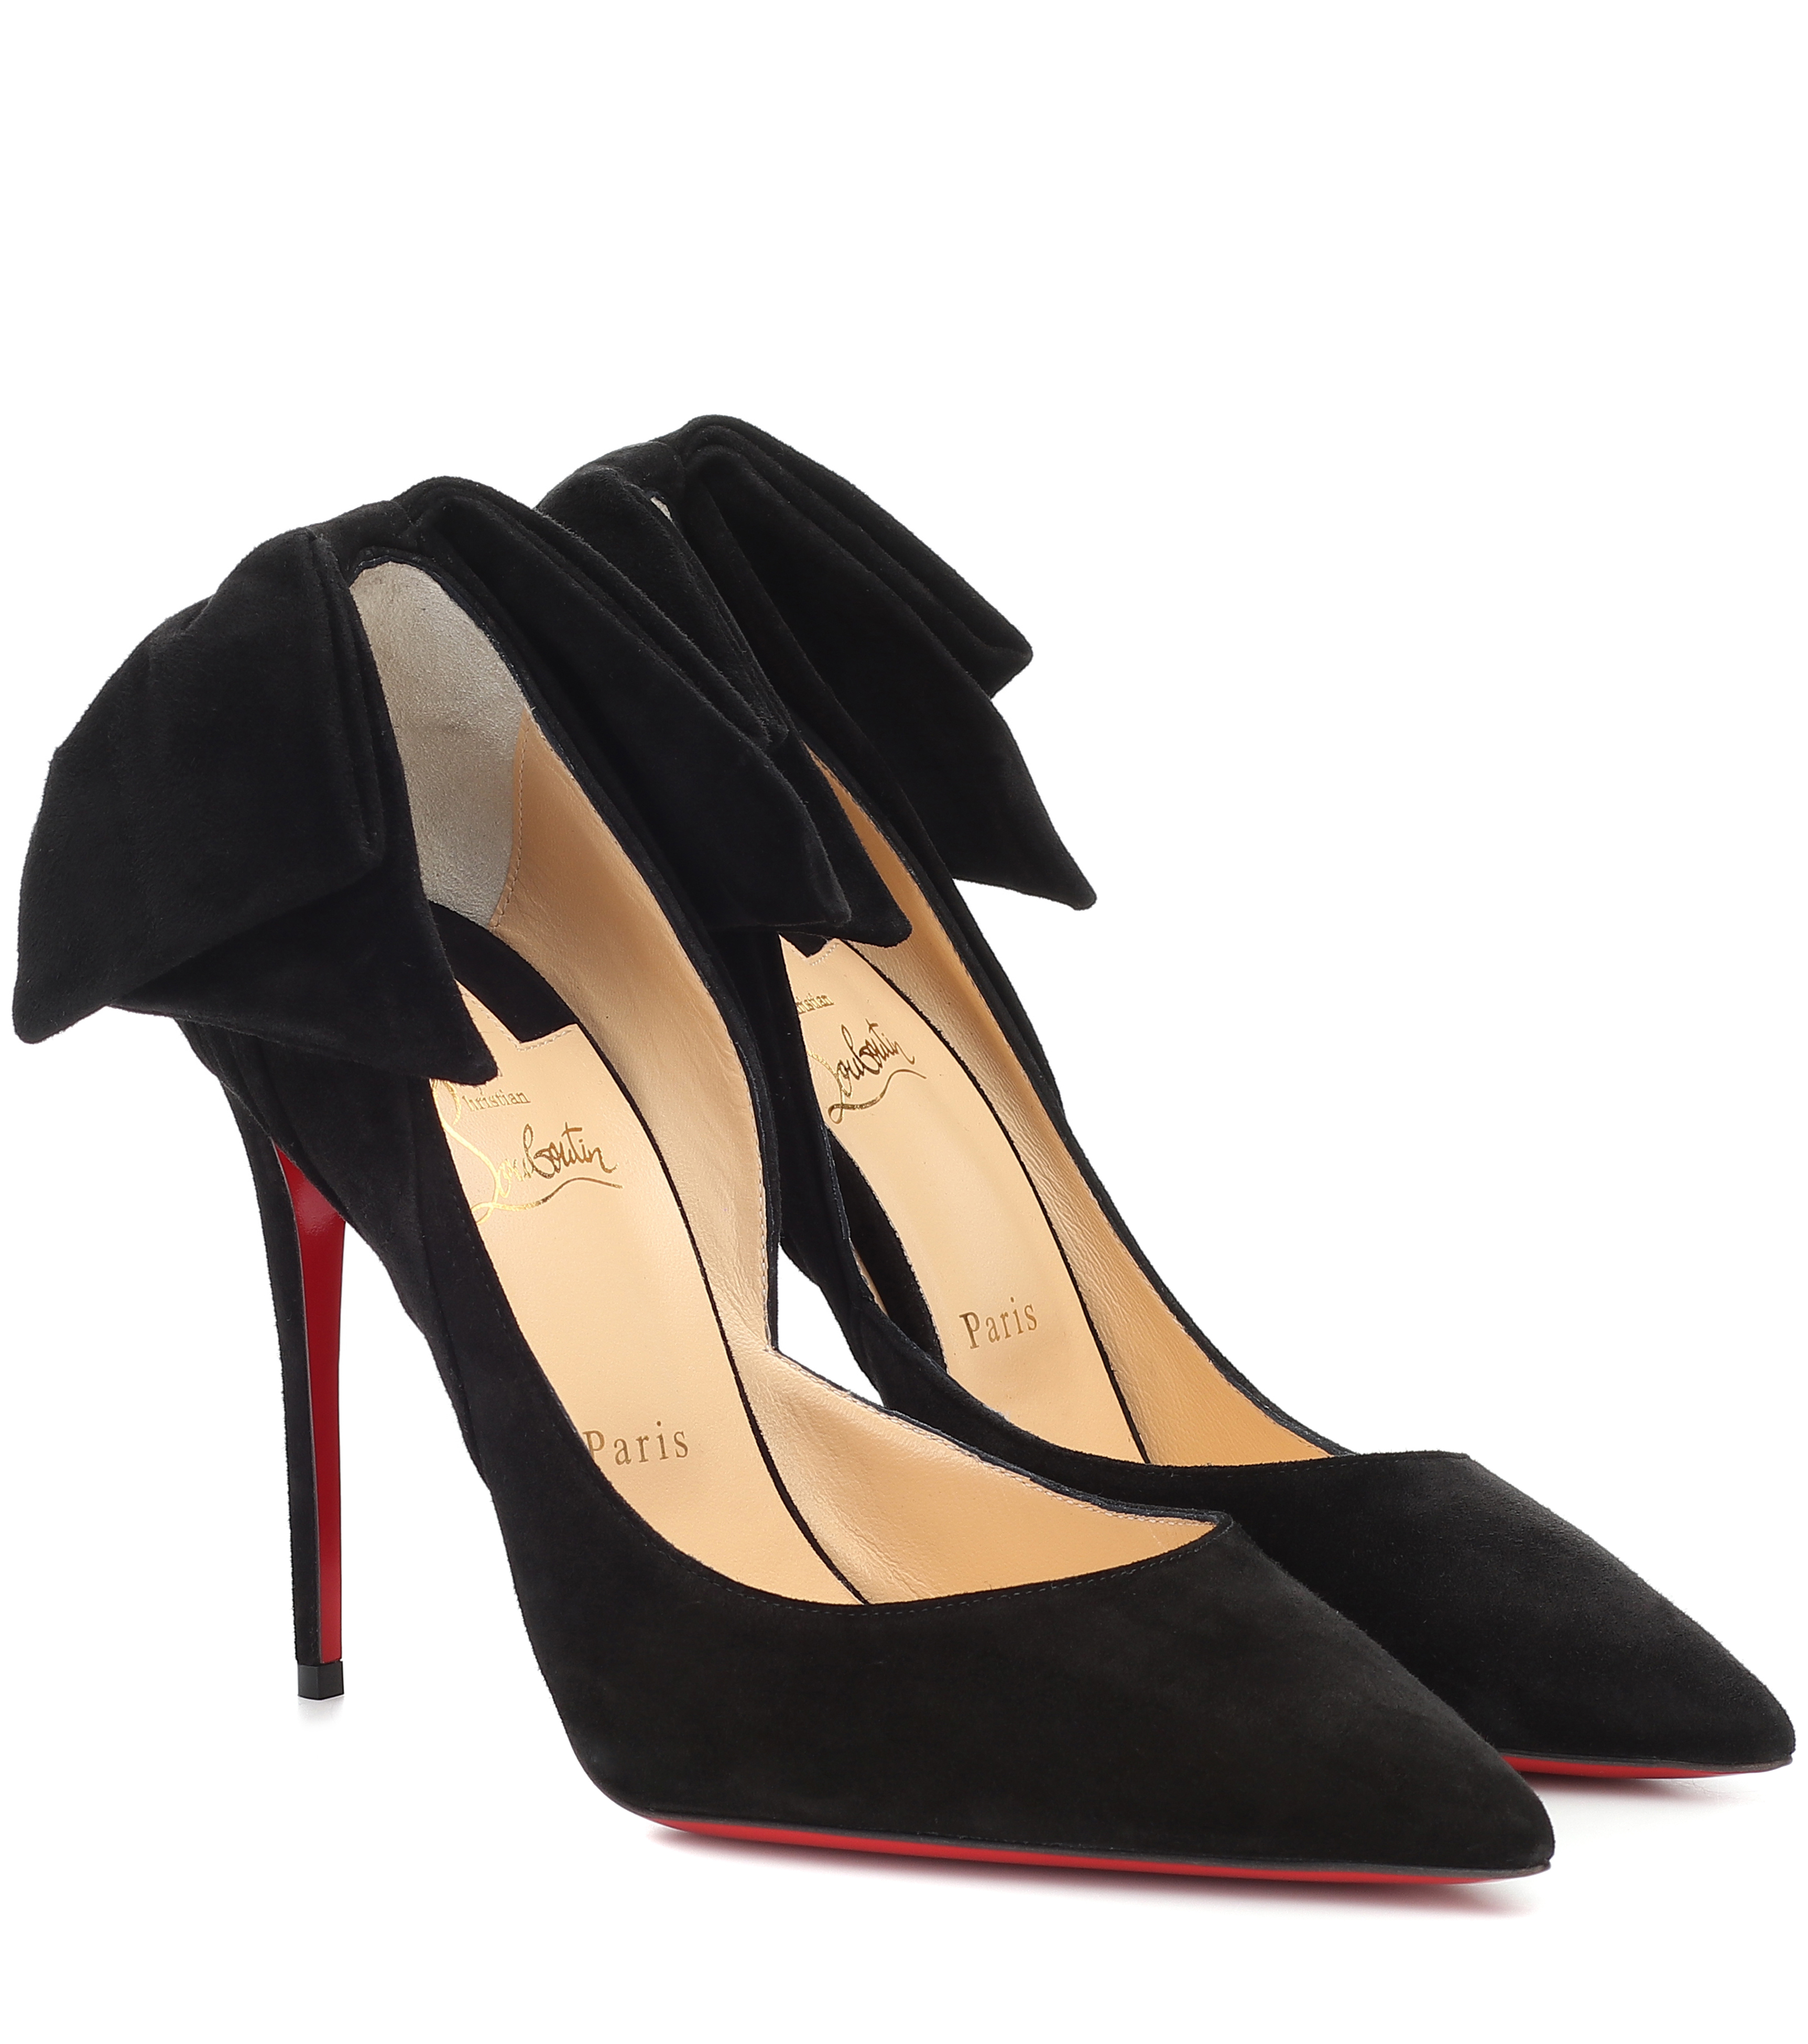 Mytheresa's exclusive capsule collection with Christian Louboutin is now available (фото 13)